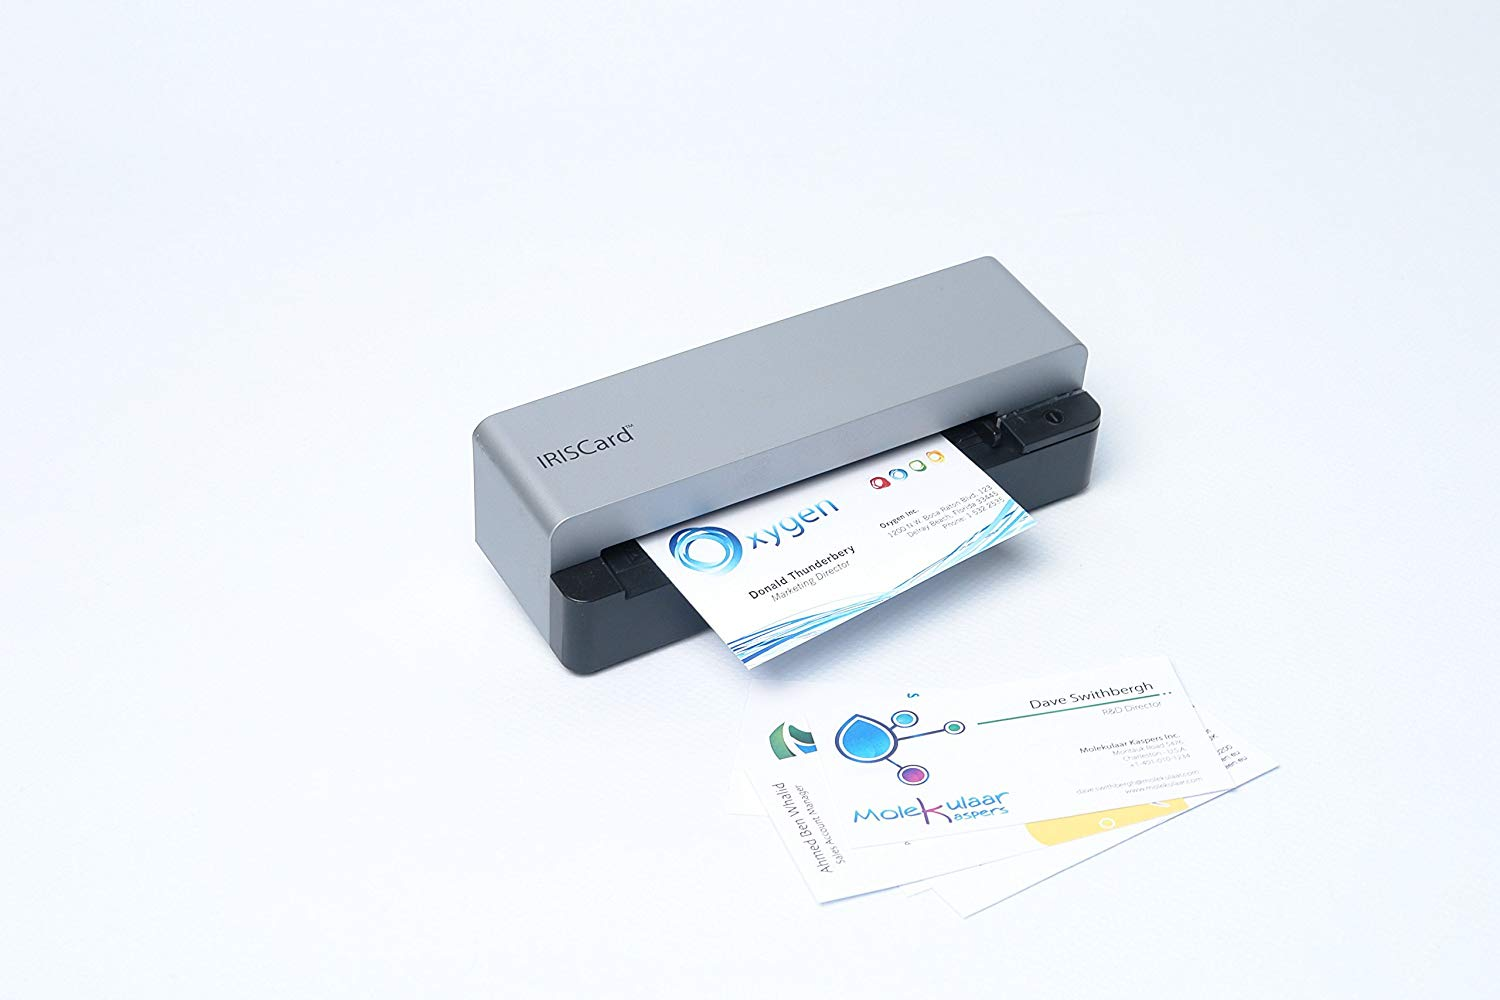 Iriscard Corporate 5 Business Card Scanner